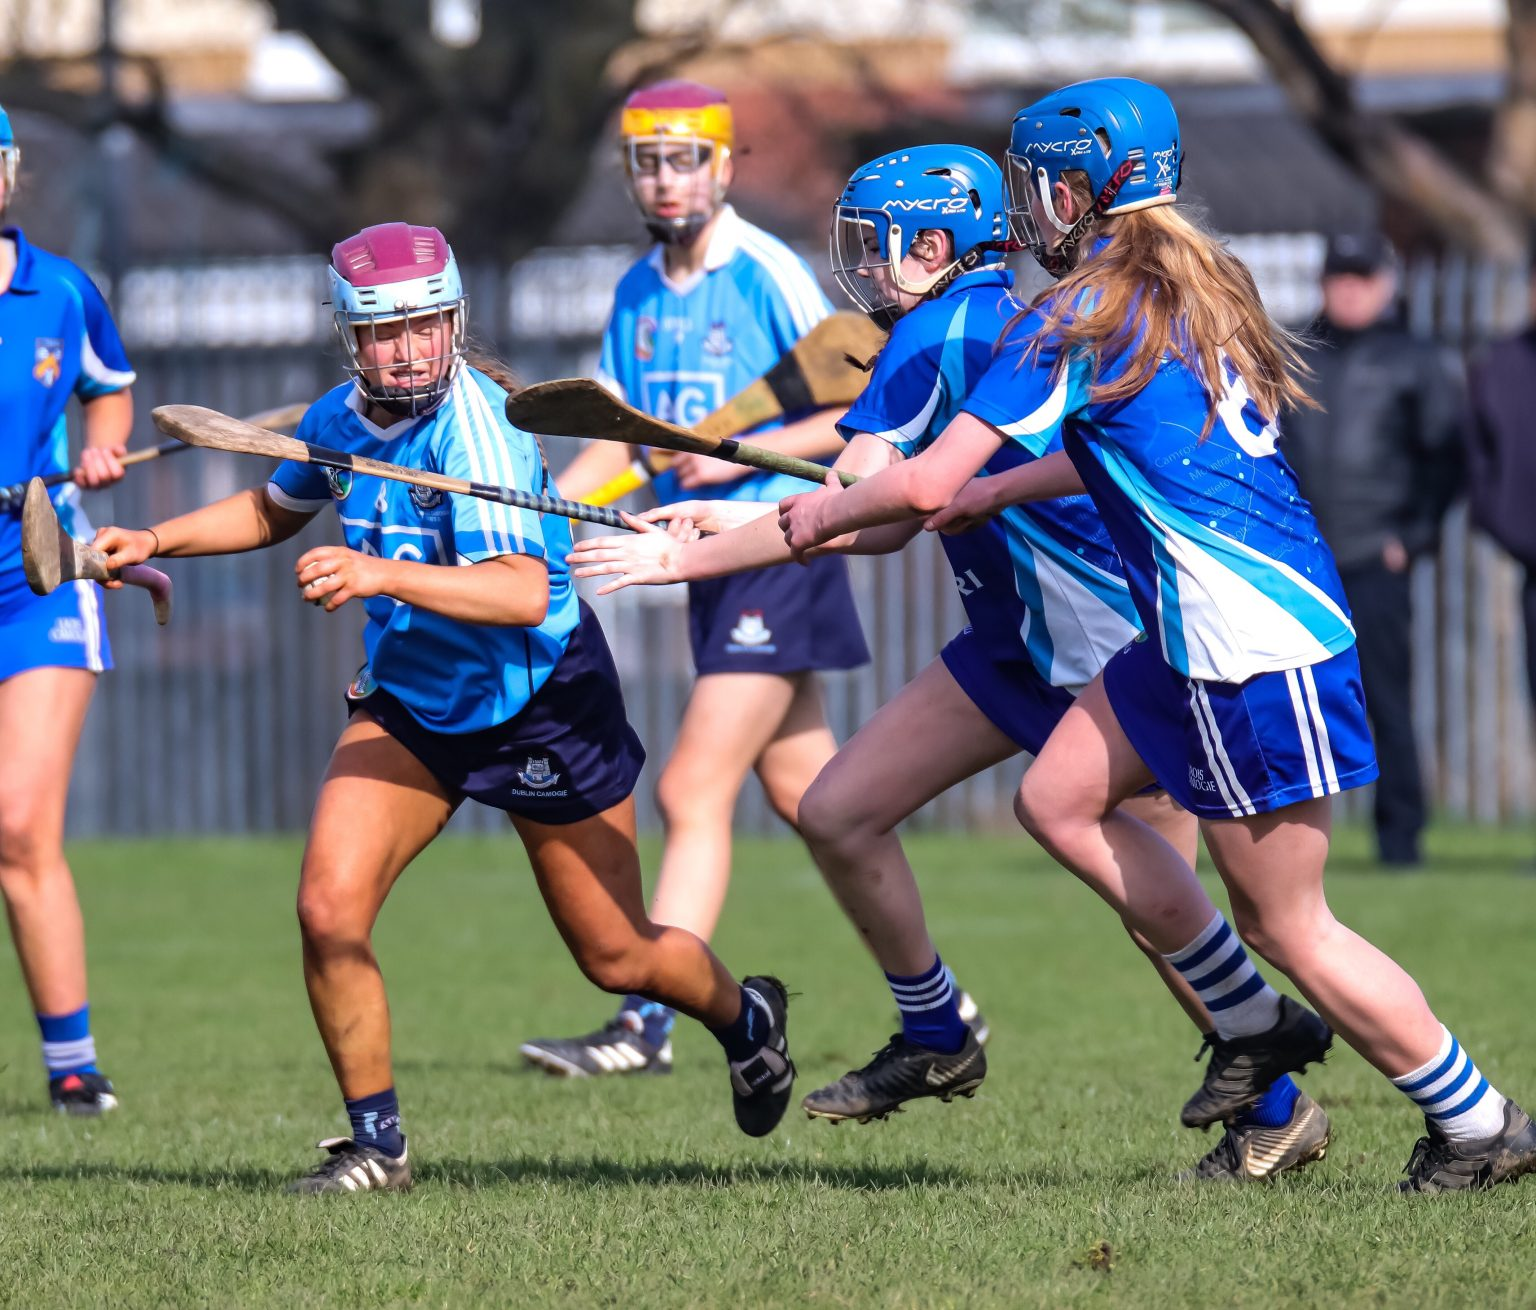 Dublin U16B Camogie Team Score Five Goals In Their Win Over Laois